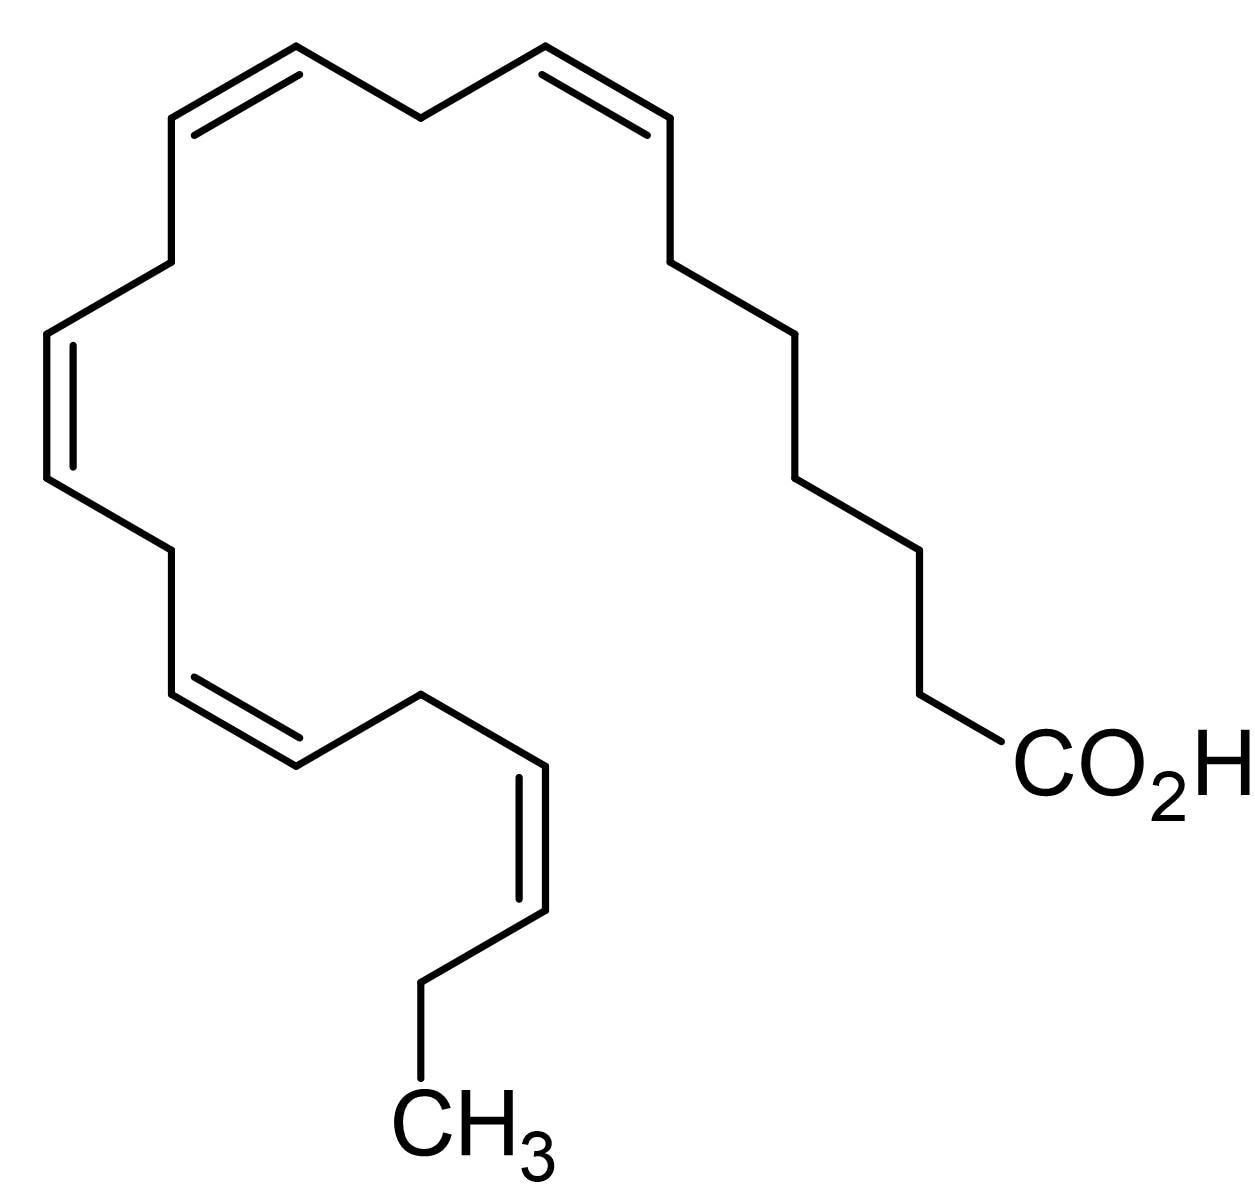 Chemical Structure - all-cis-7,10,13,16,19-Docosapentaenoic acid, Long chain polyunsaturated fatty acid (ab143894)